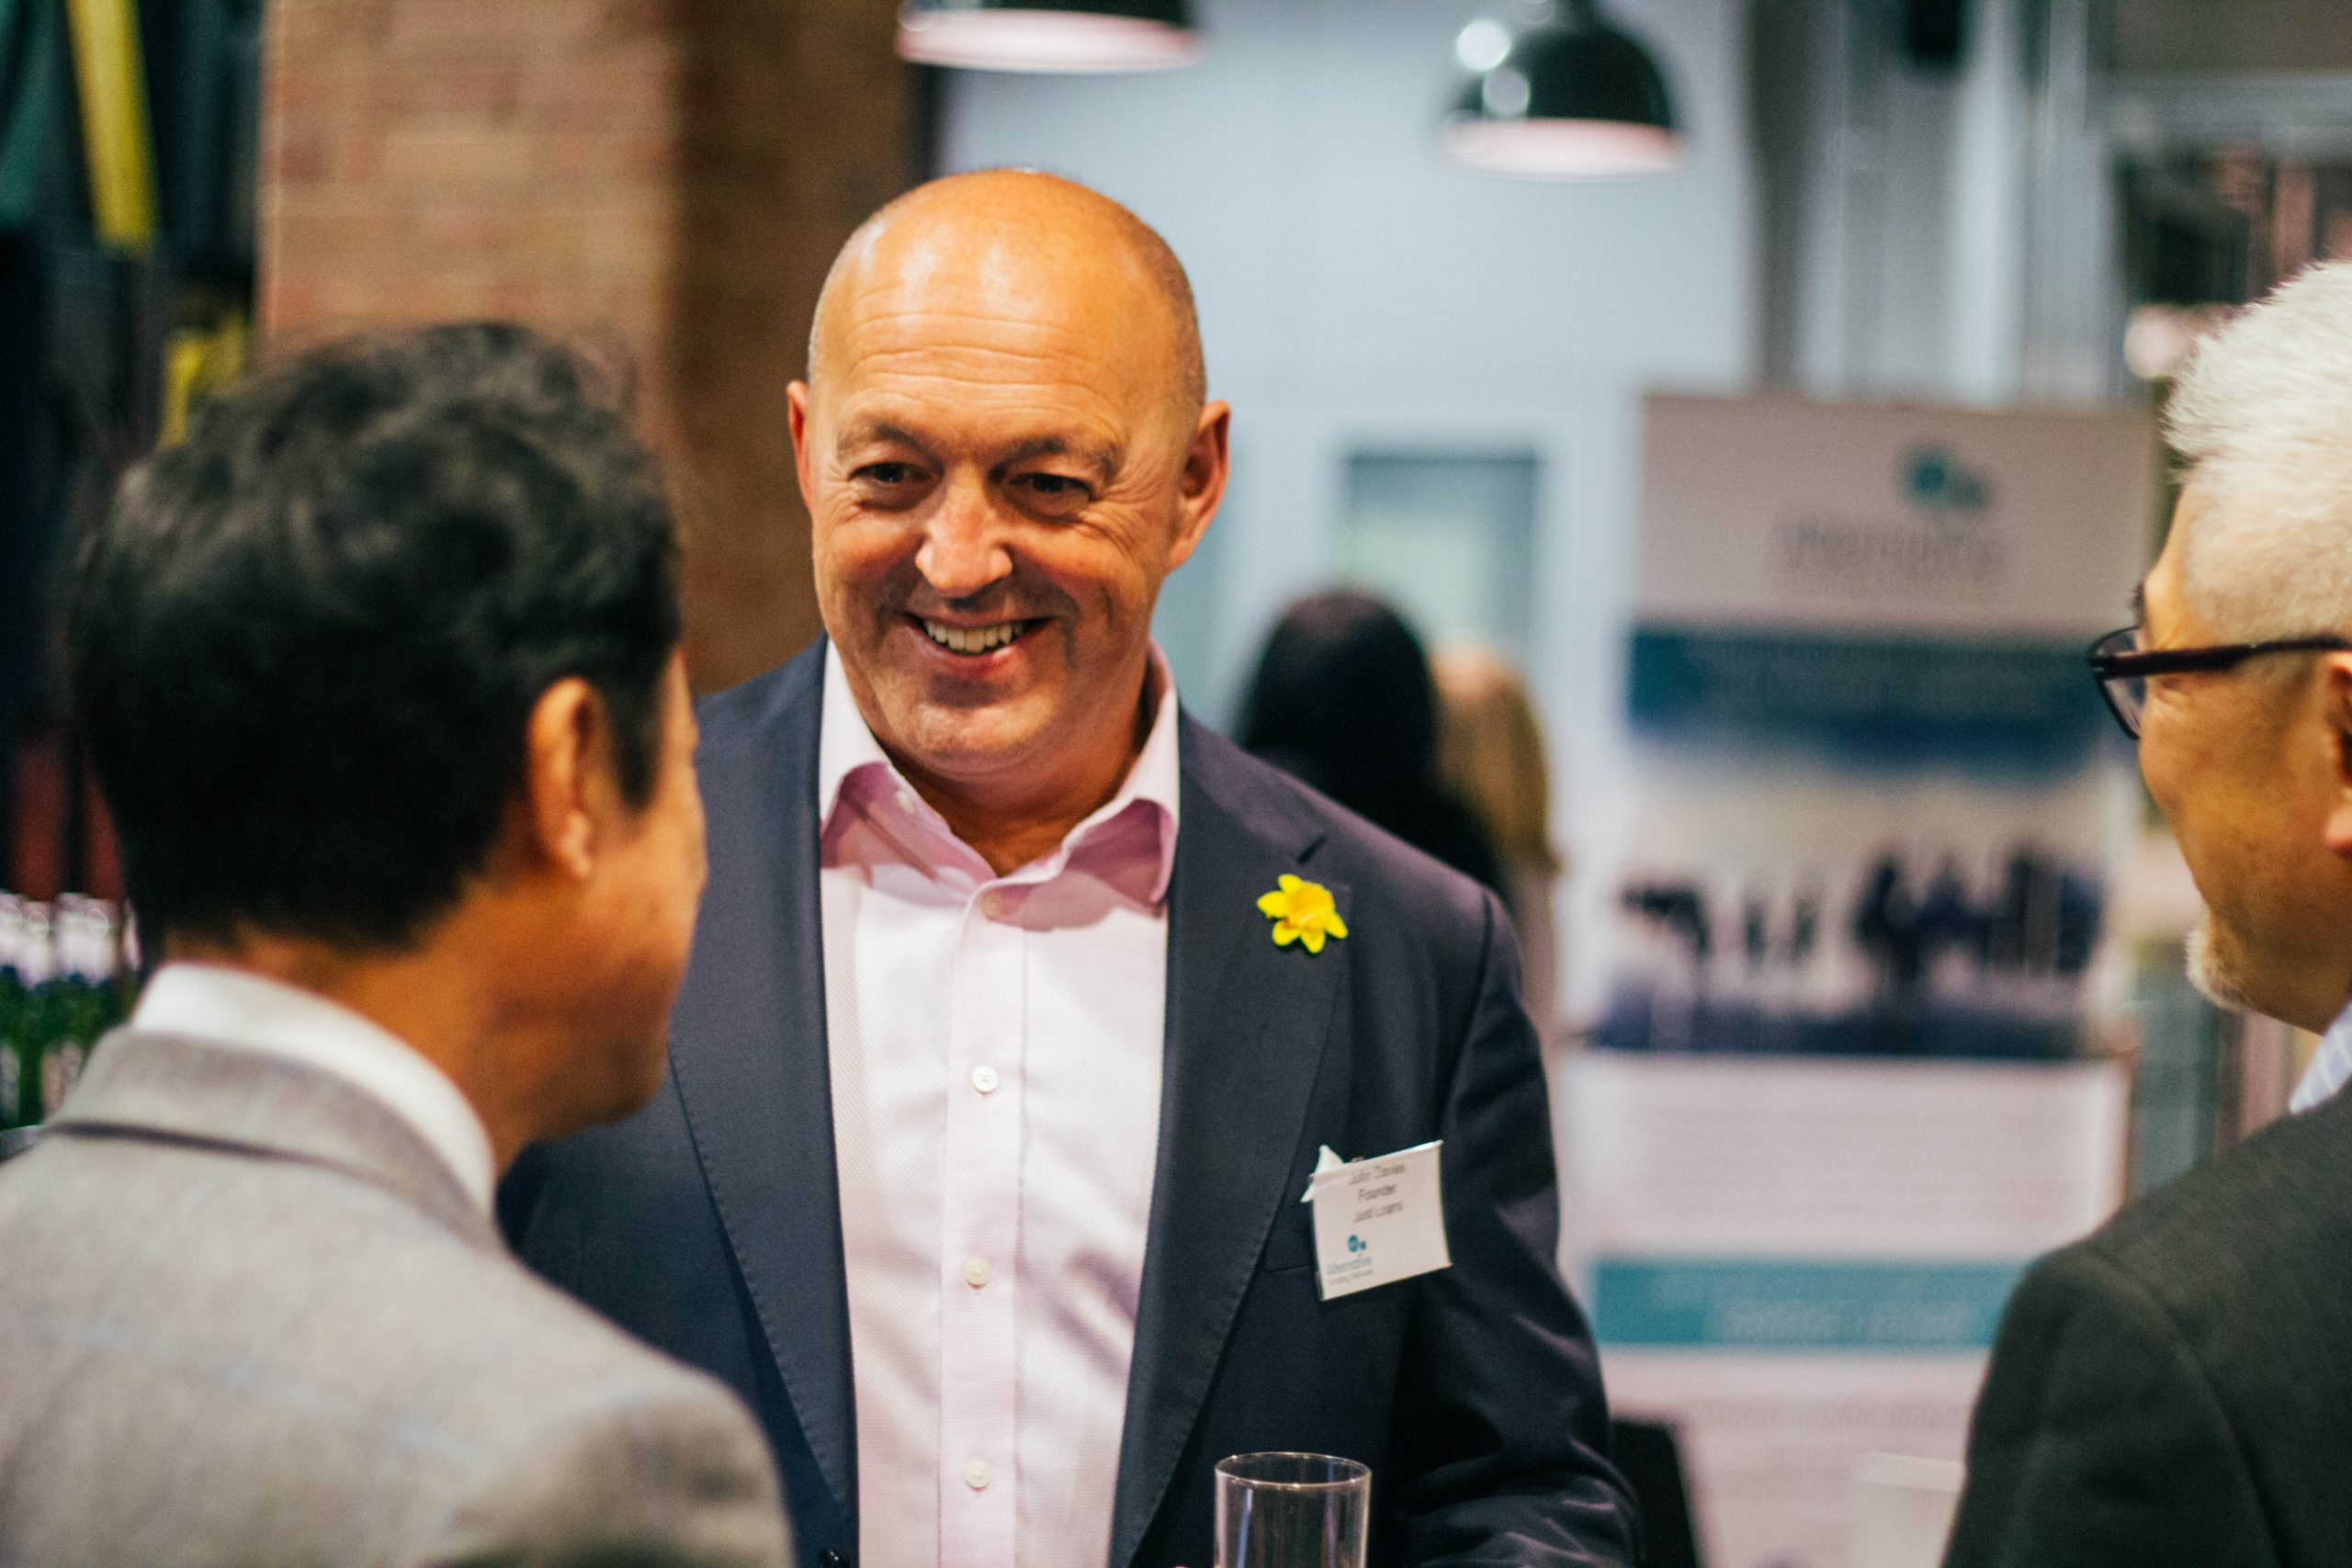 John Davies - Executive Chairman of Just CashFlow in conversation